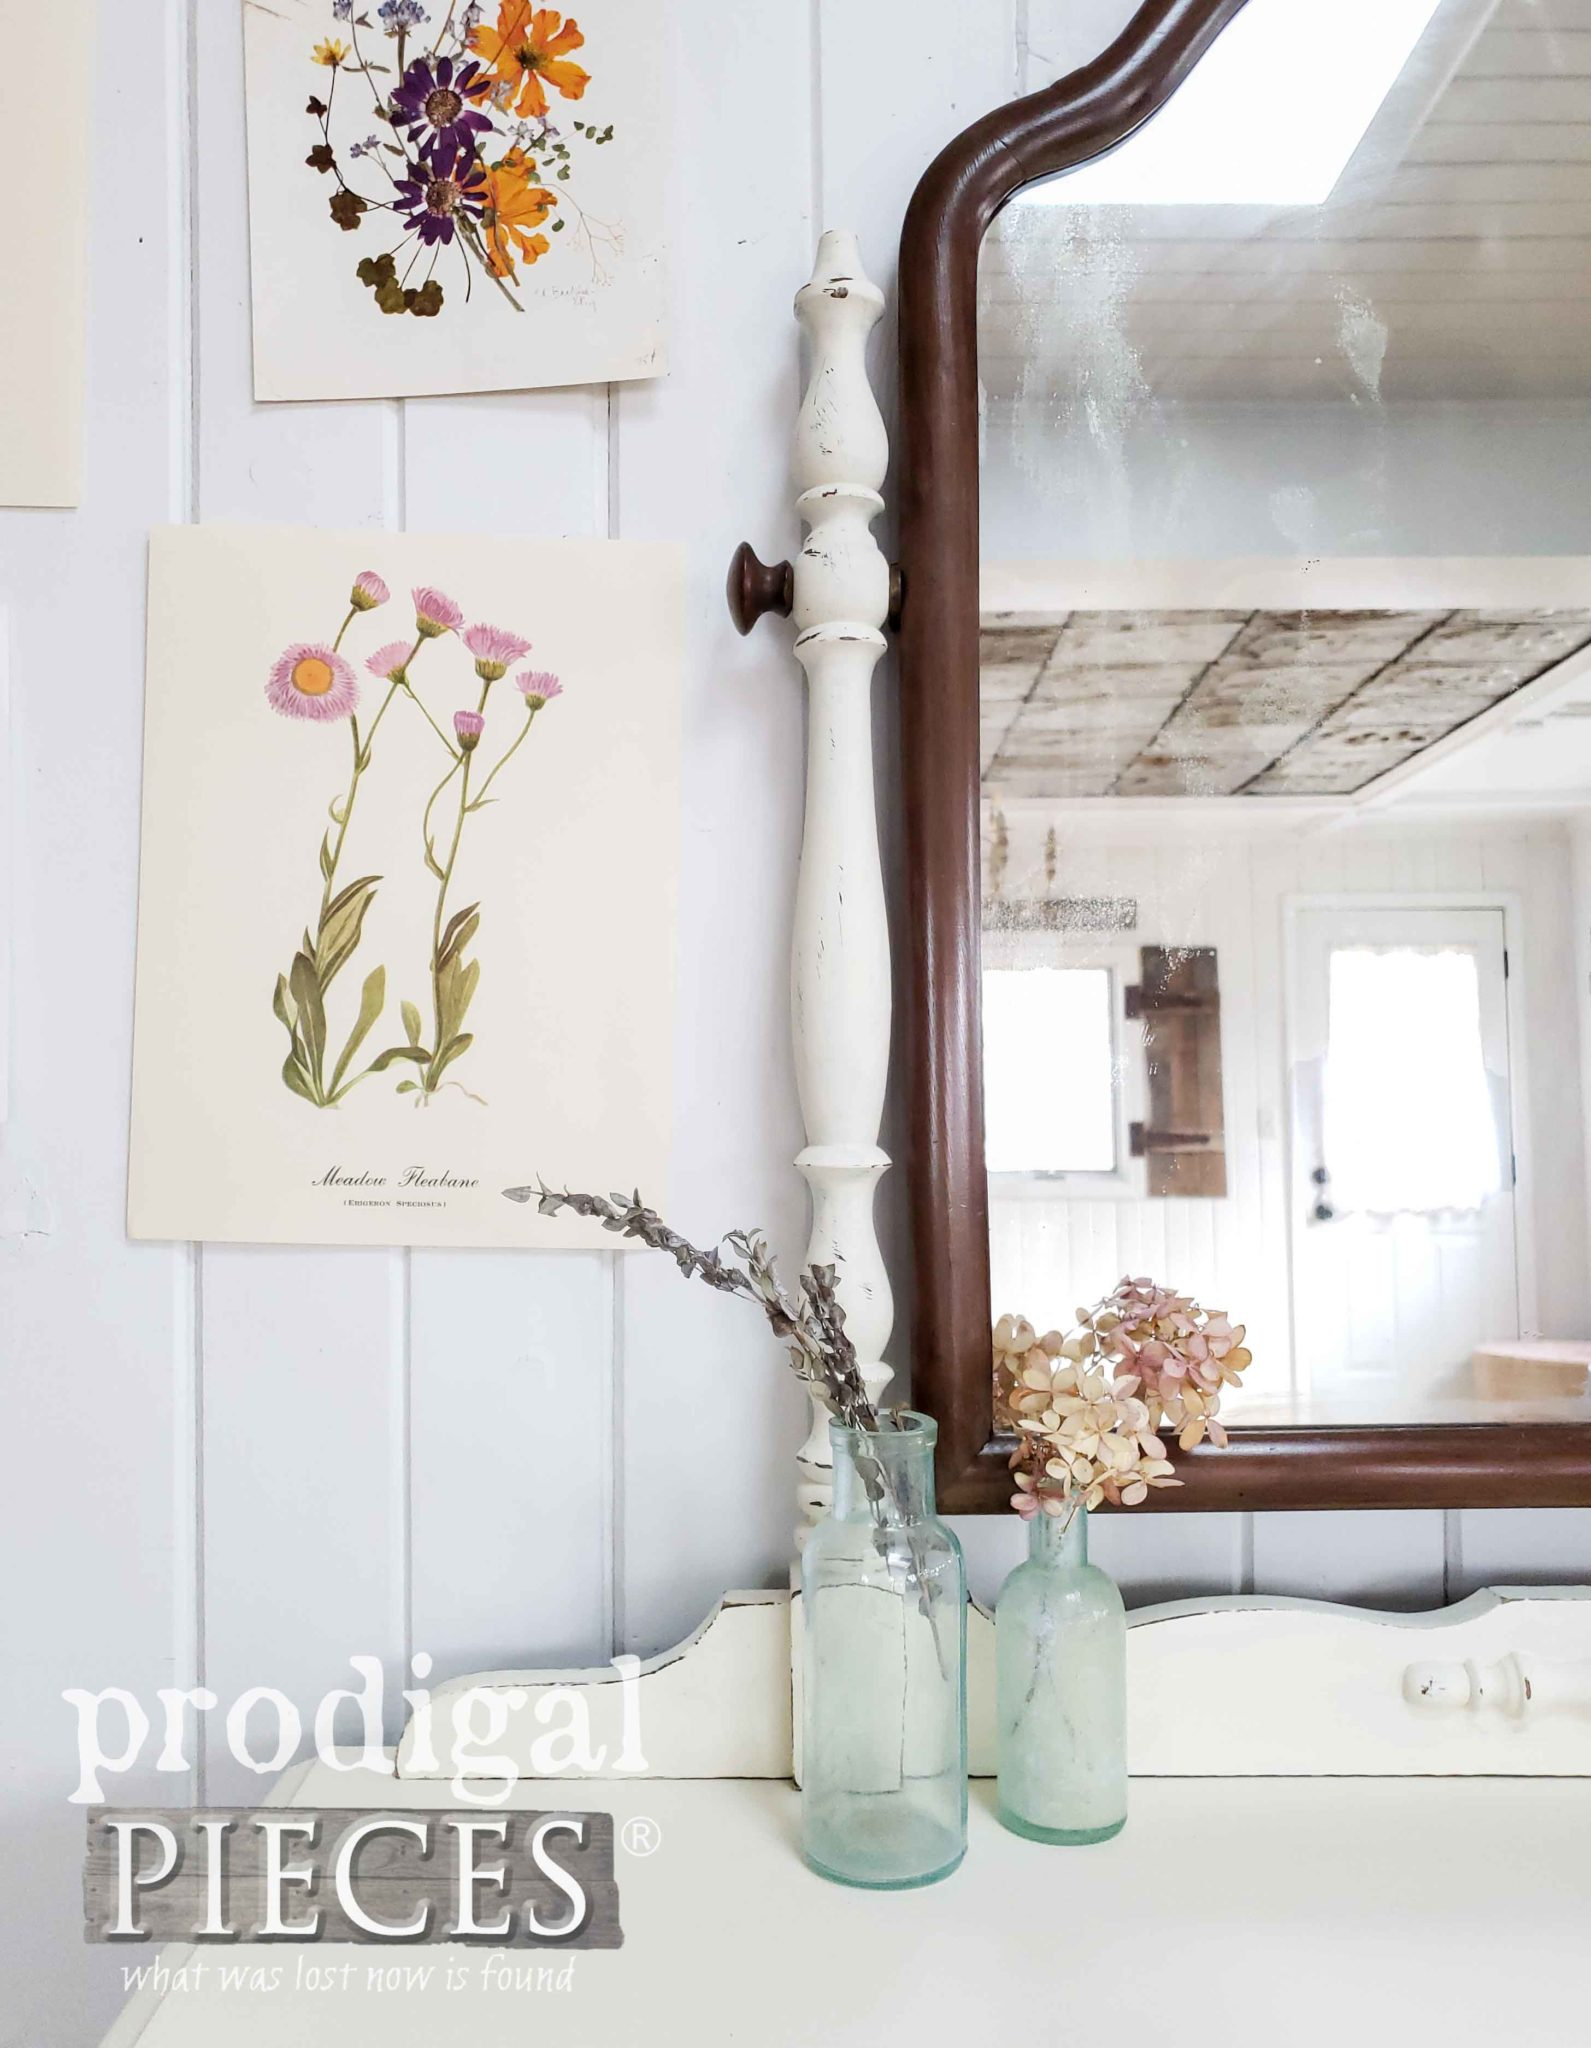 Vintage Botanical Vignette for Farmhouse Decor by Prodigal Pieces | prodigalpieces.com #prodigalpieces #vintage #diy #home #homedecor #homedecorideas #farmhouse